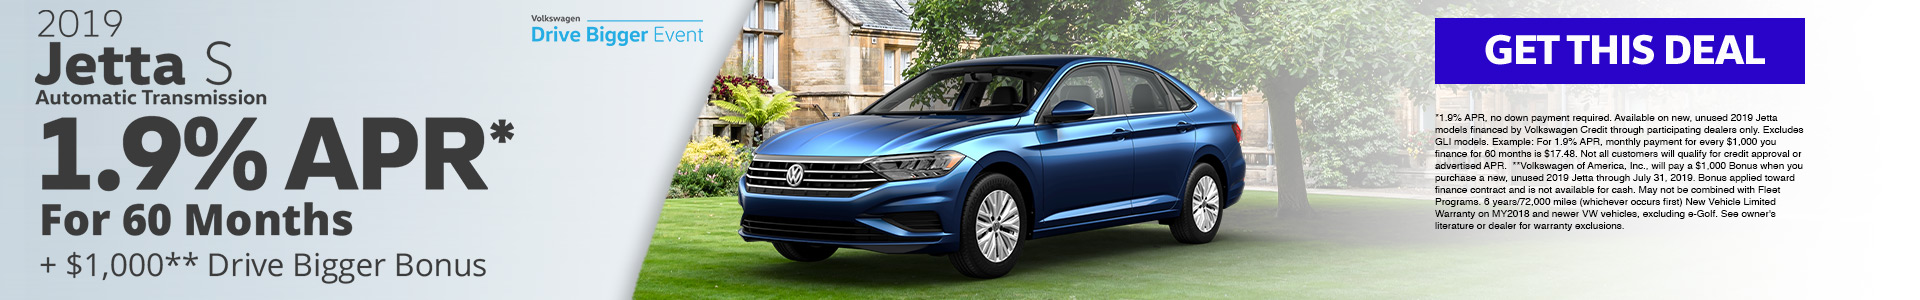 2019 Jetta 1.9% APR for 60 months